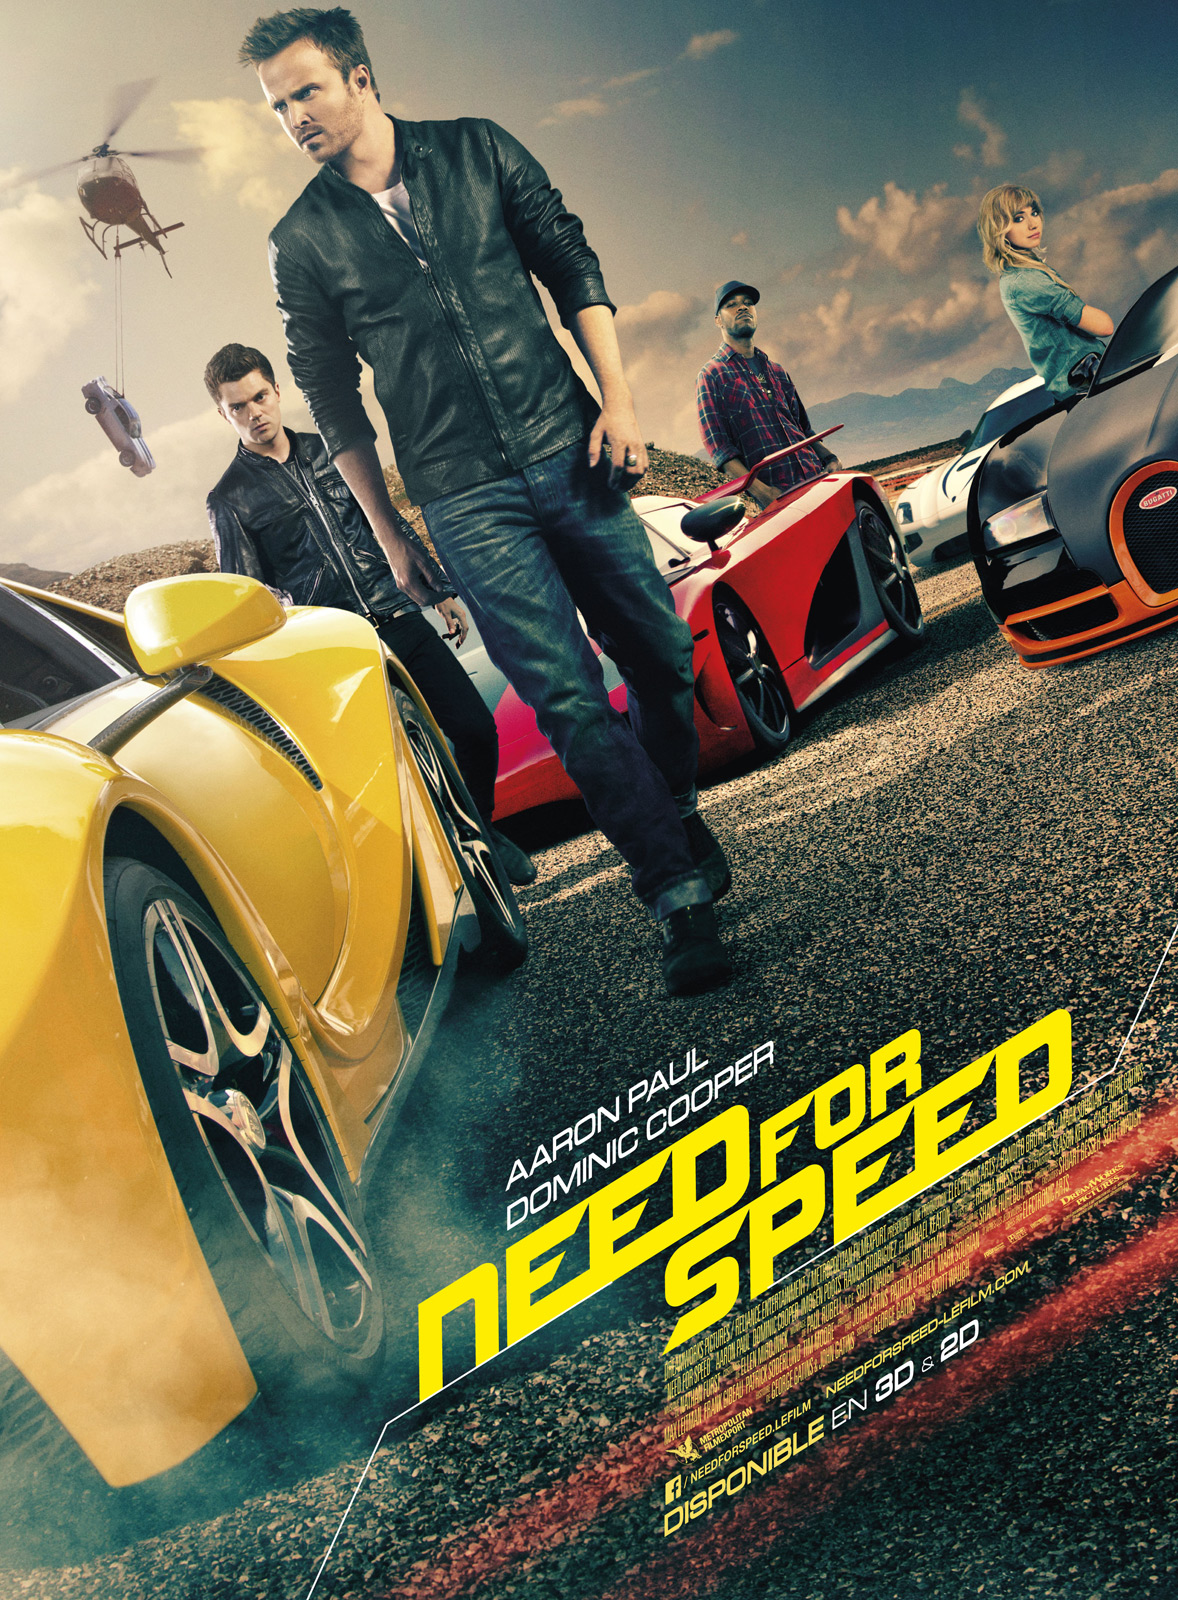 Need for Speed streaming film